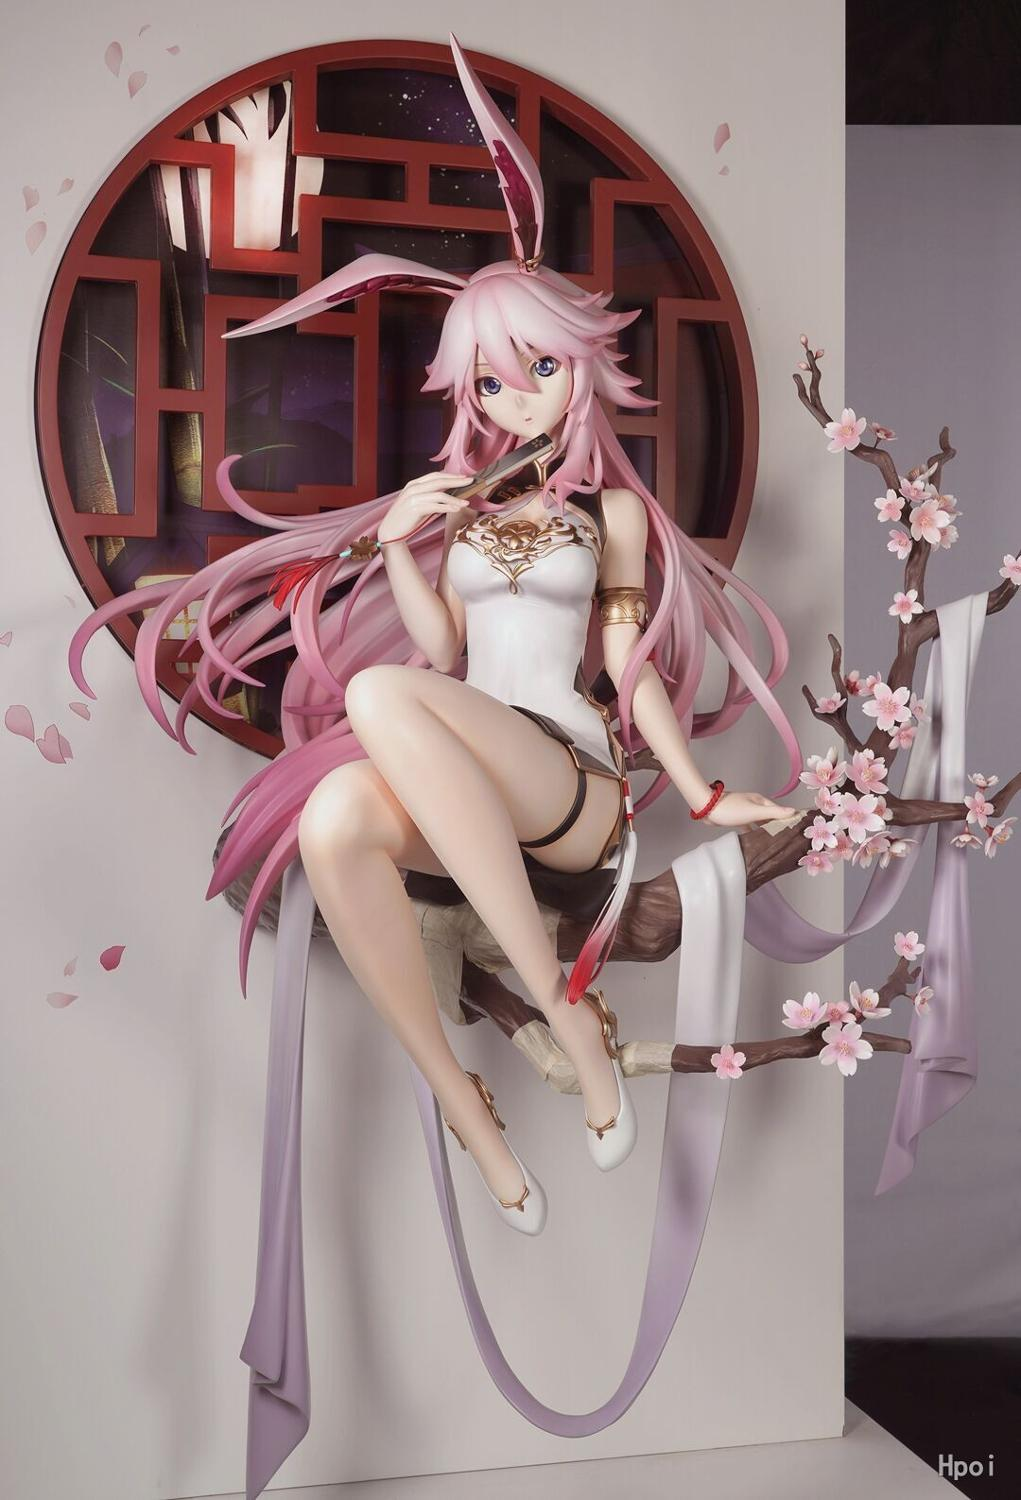 31cm Honkai Impact 3 Sakura Yae Heretic Miko Anime Sexy Girls Anime PVC Action Figures Doll Toys Anime Figure Toy Children Gifts